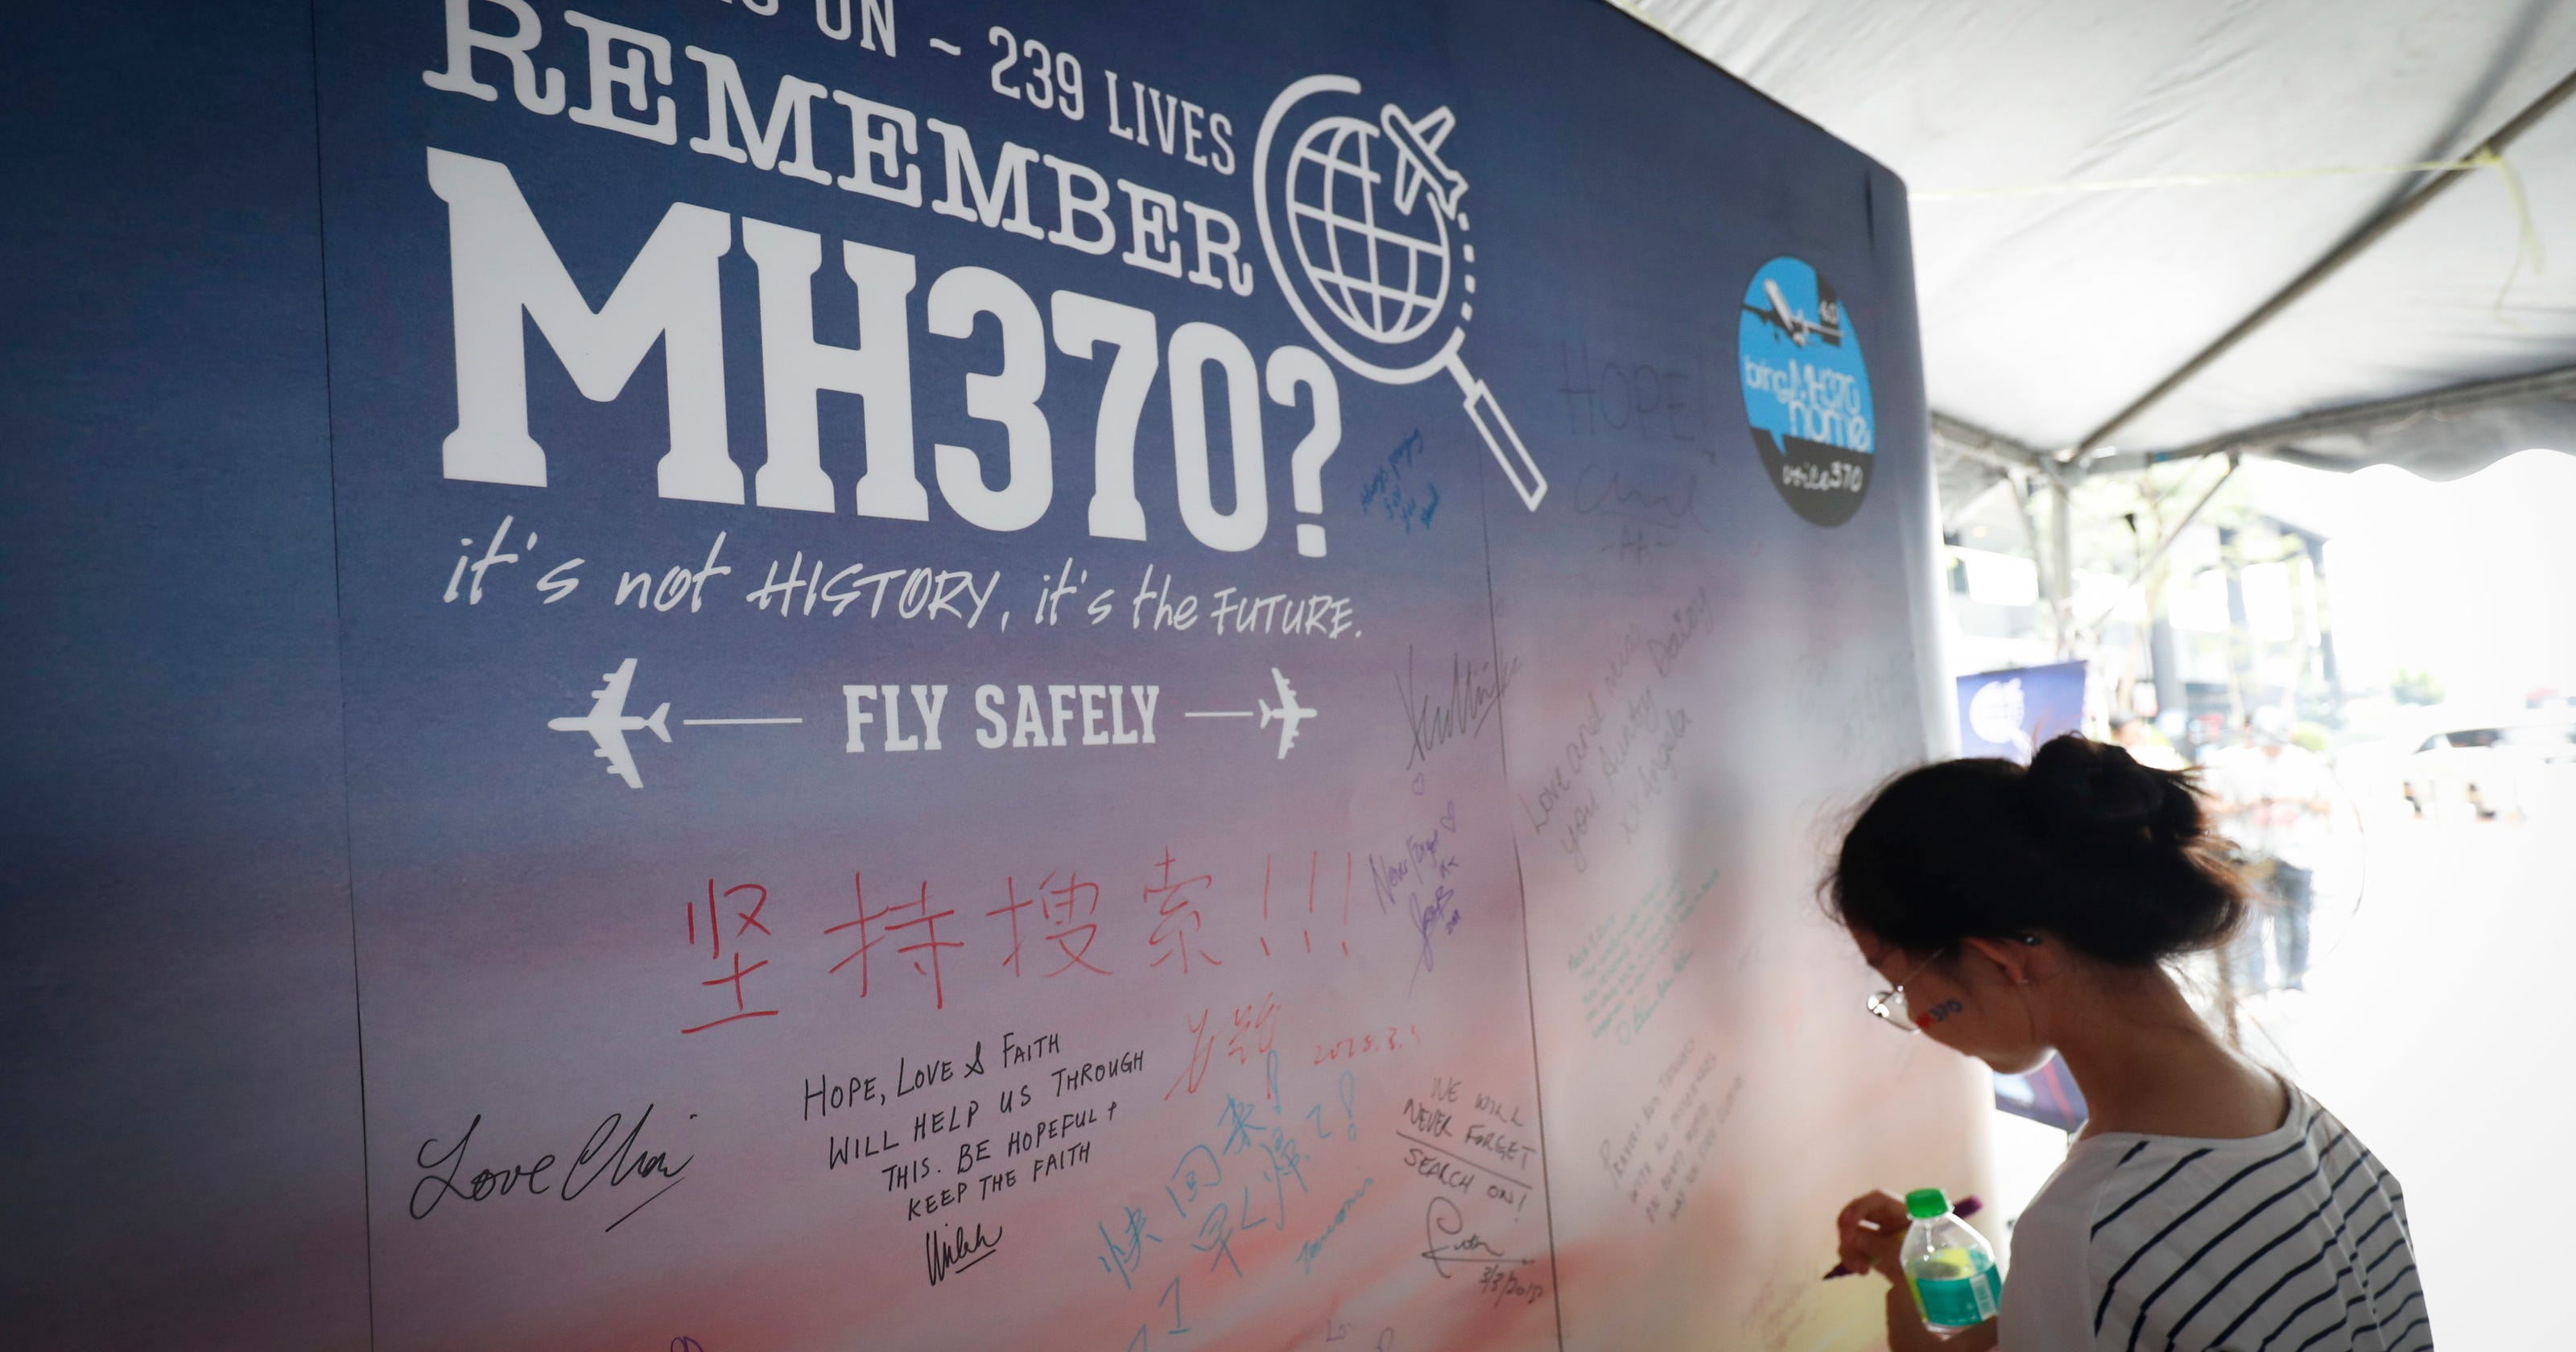 Malaysia Airlines Flight 370, 4 years later: New hope mystery could